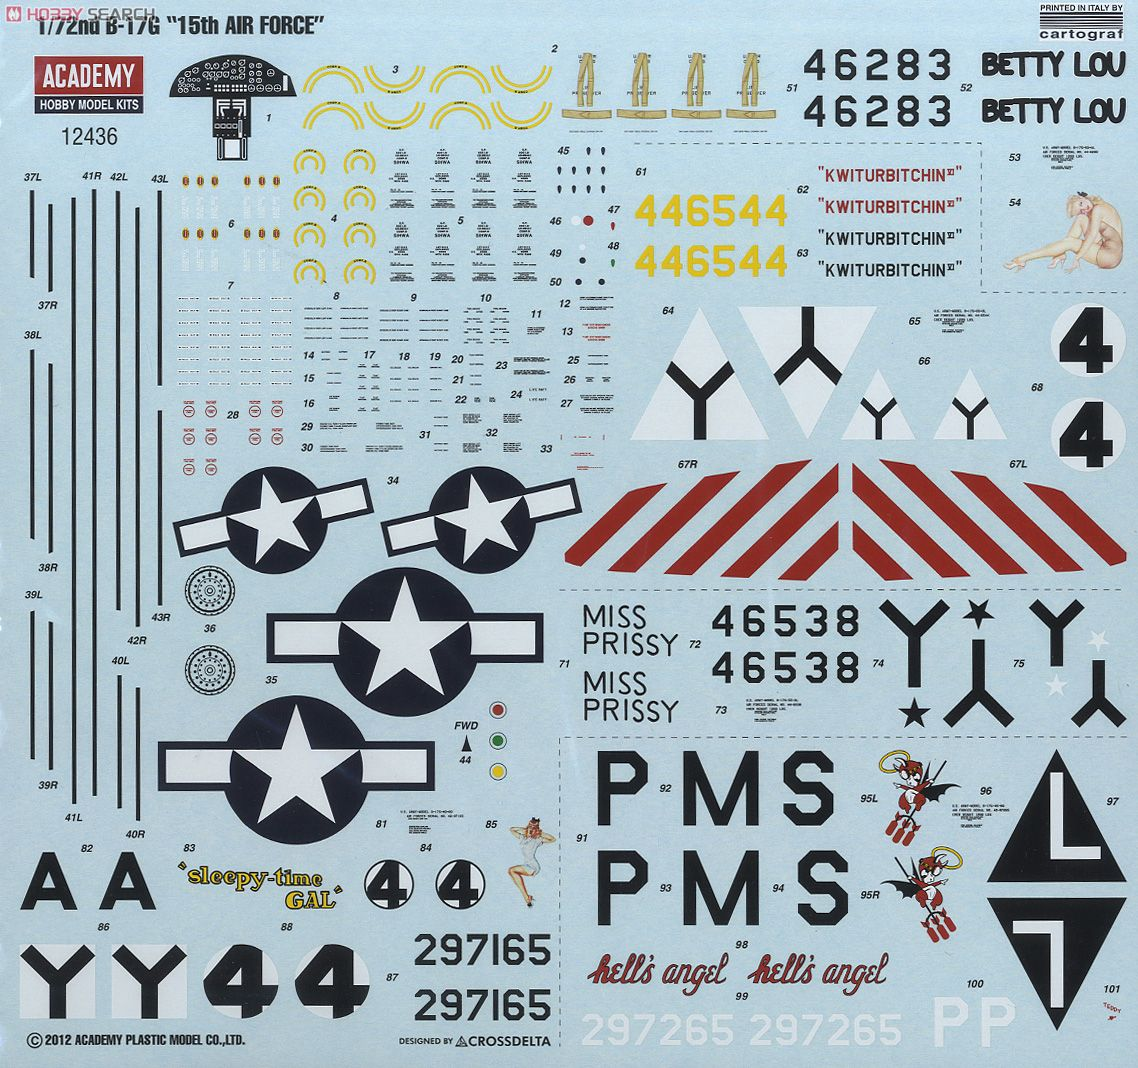 Boeing B-17 G Flying Fortress, 486th Group Bomber 1944 - Academy 1/72 10177694n4